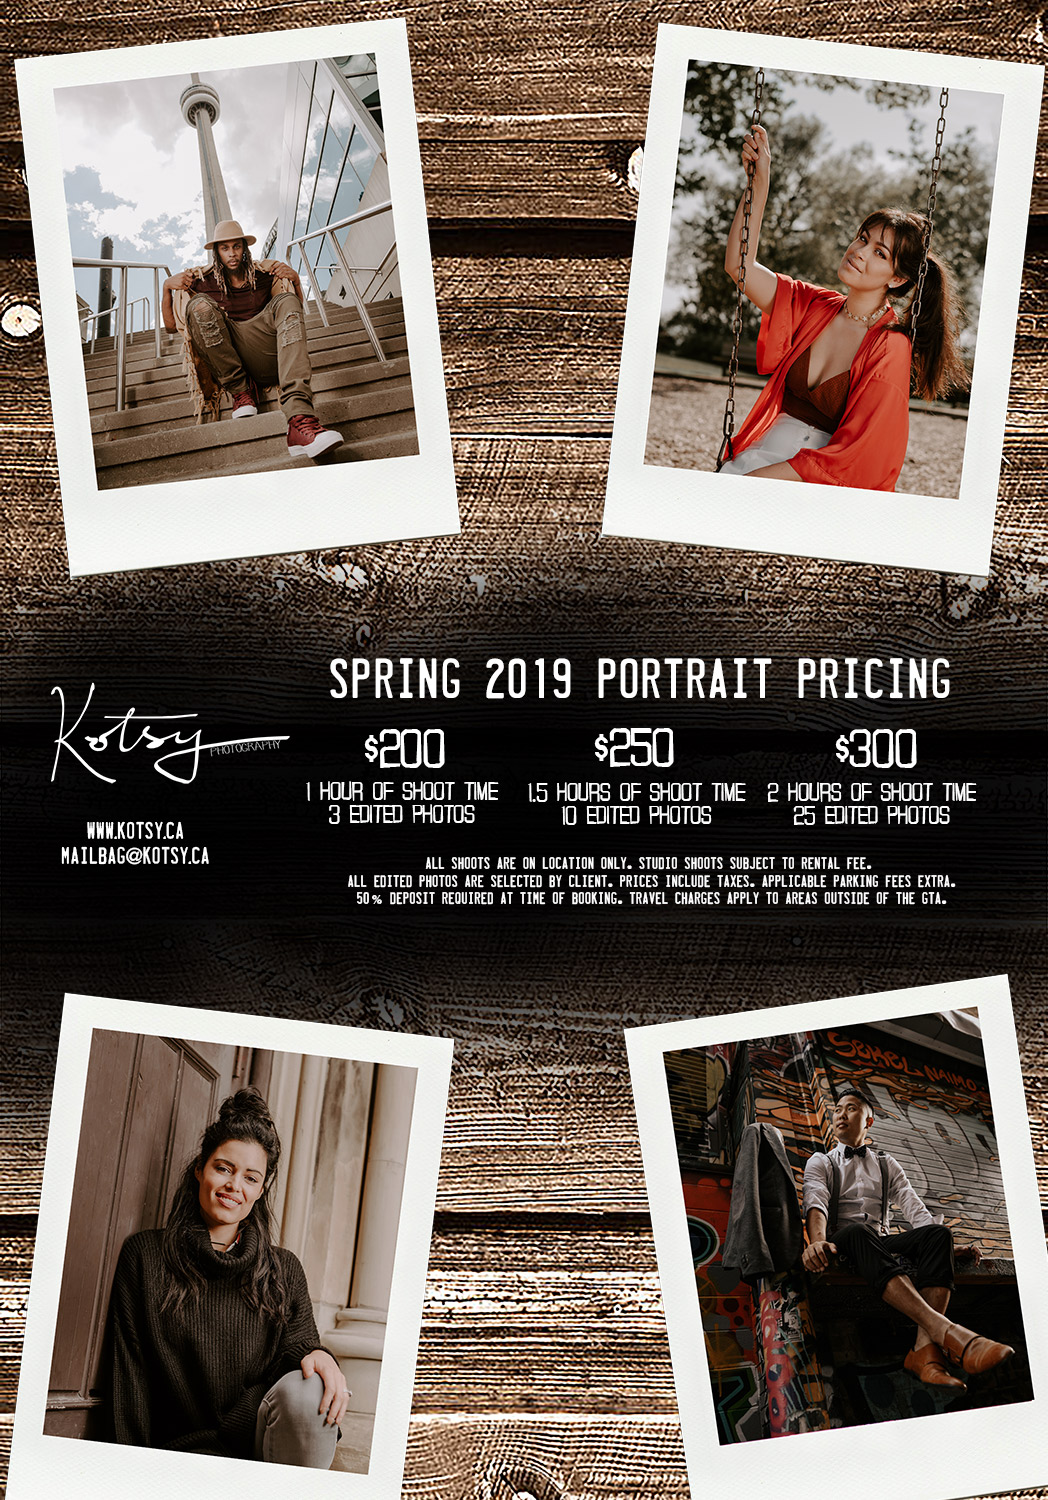 Spring 2019 Portrait Pricing    $200 - 1 Hour of Shoot Time/3 Edited Photos $250 - 1.5 Hours of Shoot Time/10 Edited Photos $300 - 2 Hours of Shoot Time/25 Edited Photos   All shoots are on location only. Studio shoots subject to rental fee. All edited photos are selected by client. Prices include taxes. Applicable parking fees extra. 50% deposit required at time of booking. Travel charges apply to areas outside of the GTA.